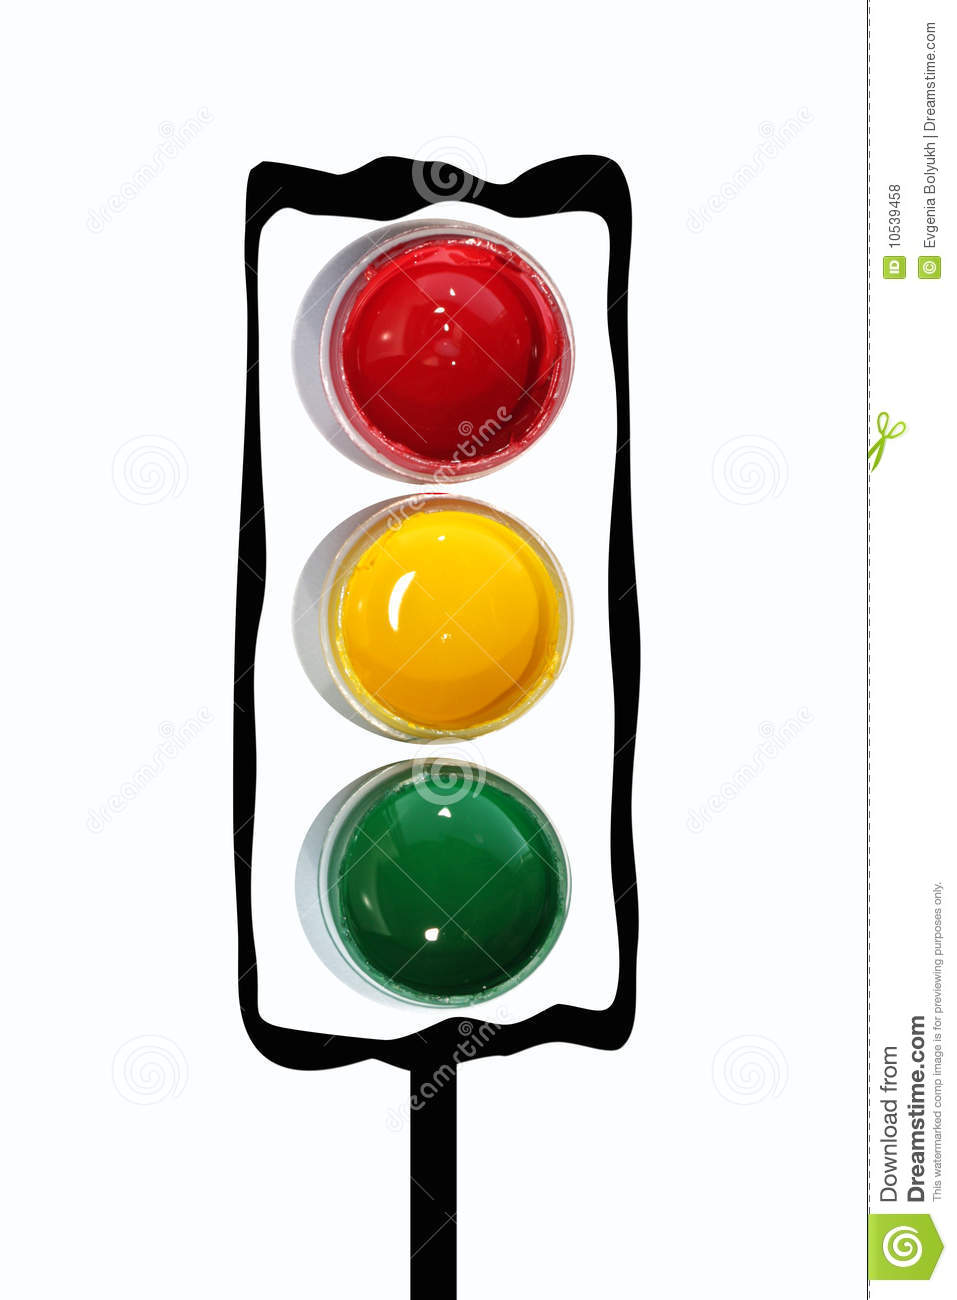 Traffic Light Royalty Free Stock Photos Image 10539458